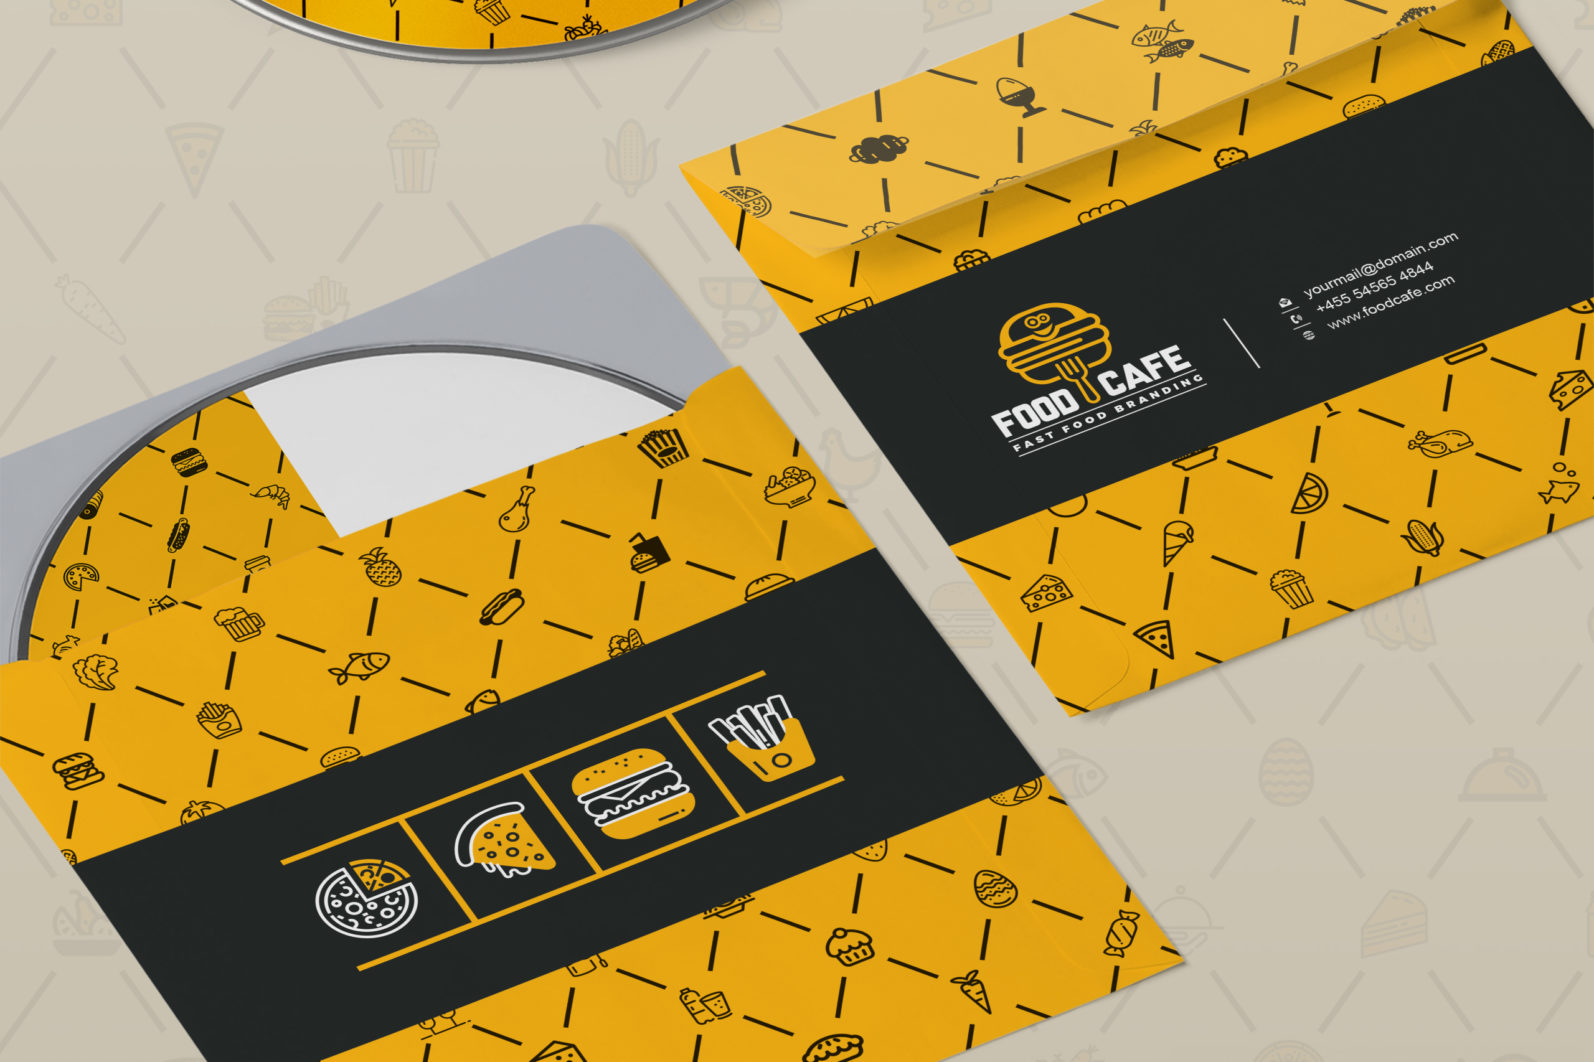 Mega Stationery Branding Identity for Fast Food and Restaurant - 15 CD and DVD Package -